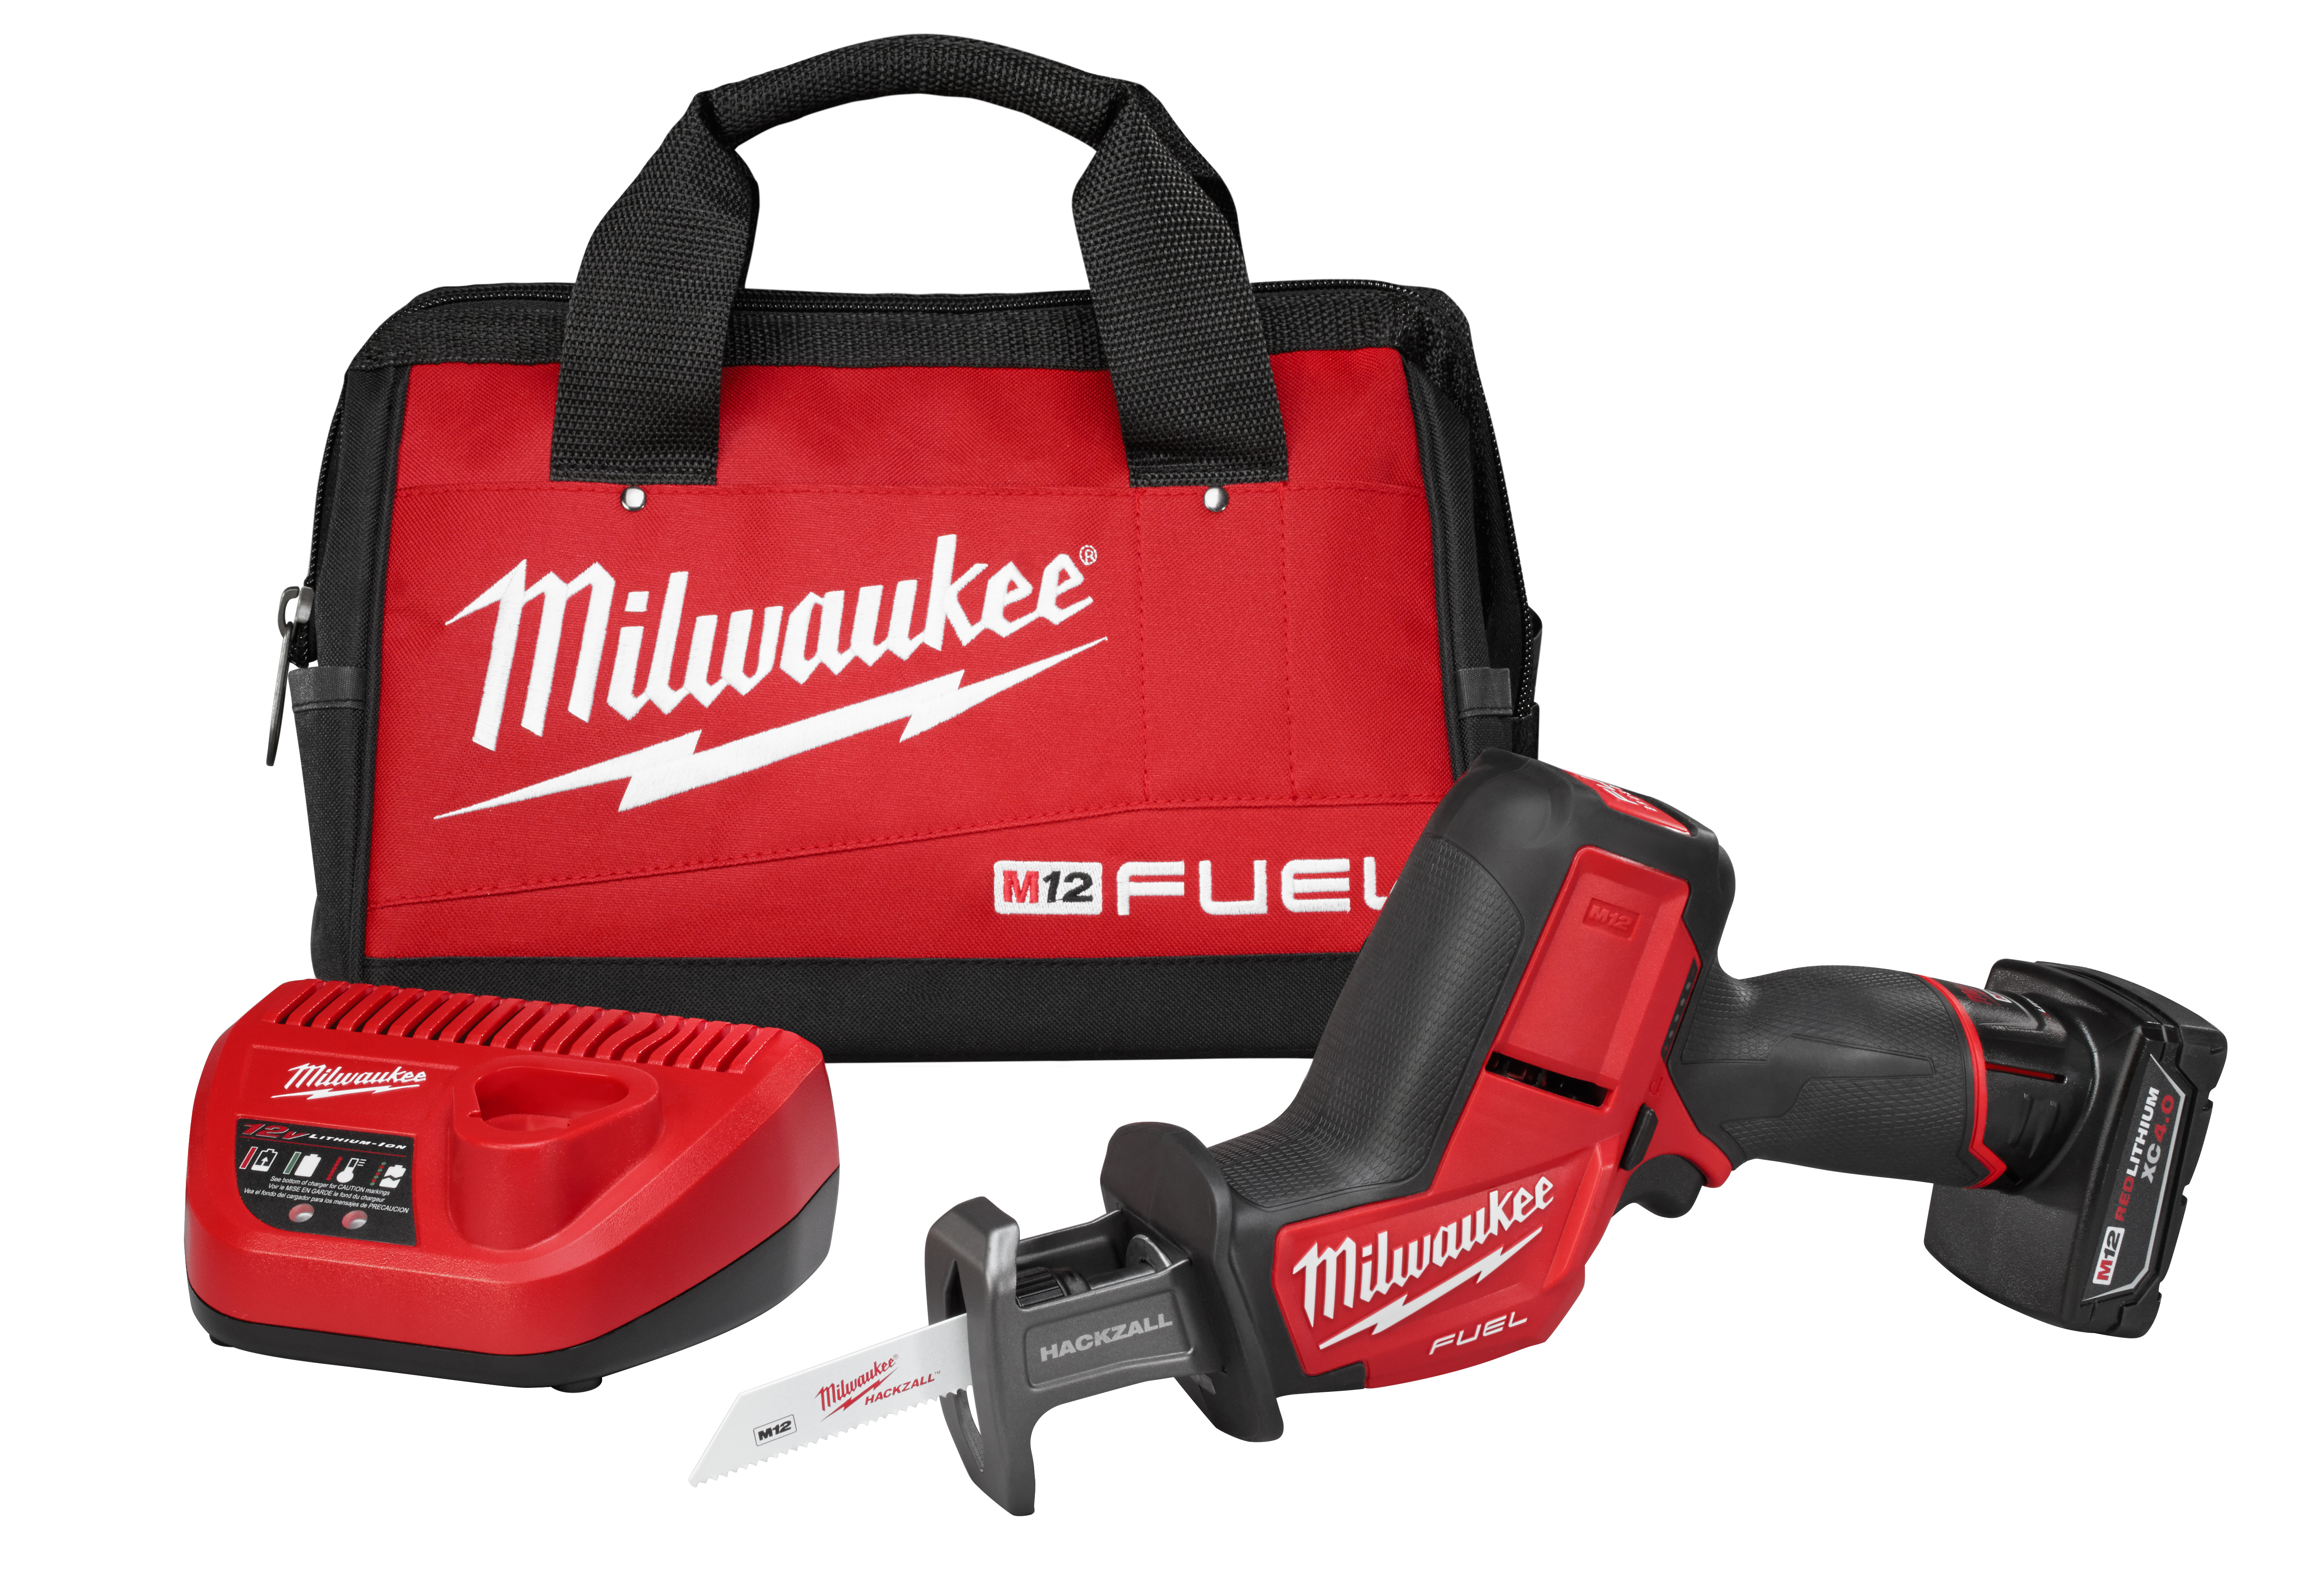 Milwaukee® M12™ FUEL™ 2520-21XC Cordless Reciprocating Saw Kit, 5/8 in L Stroke, 3000 spm, Straight Cut, 12 VDC, 13-1/4 in OAL